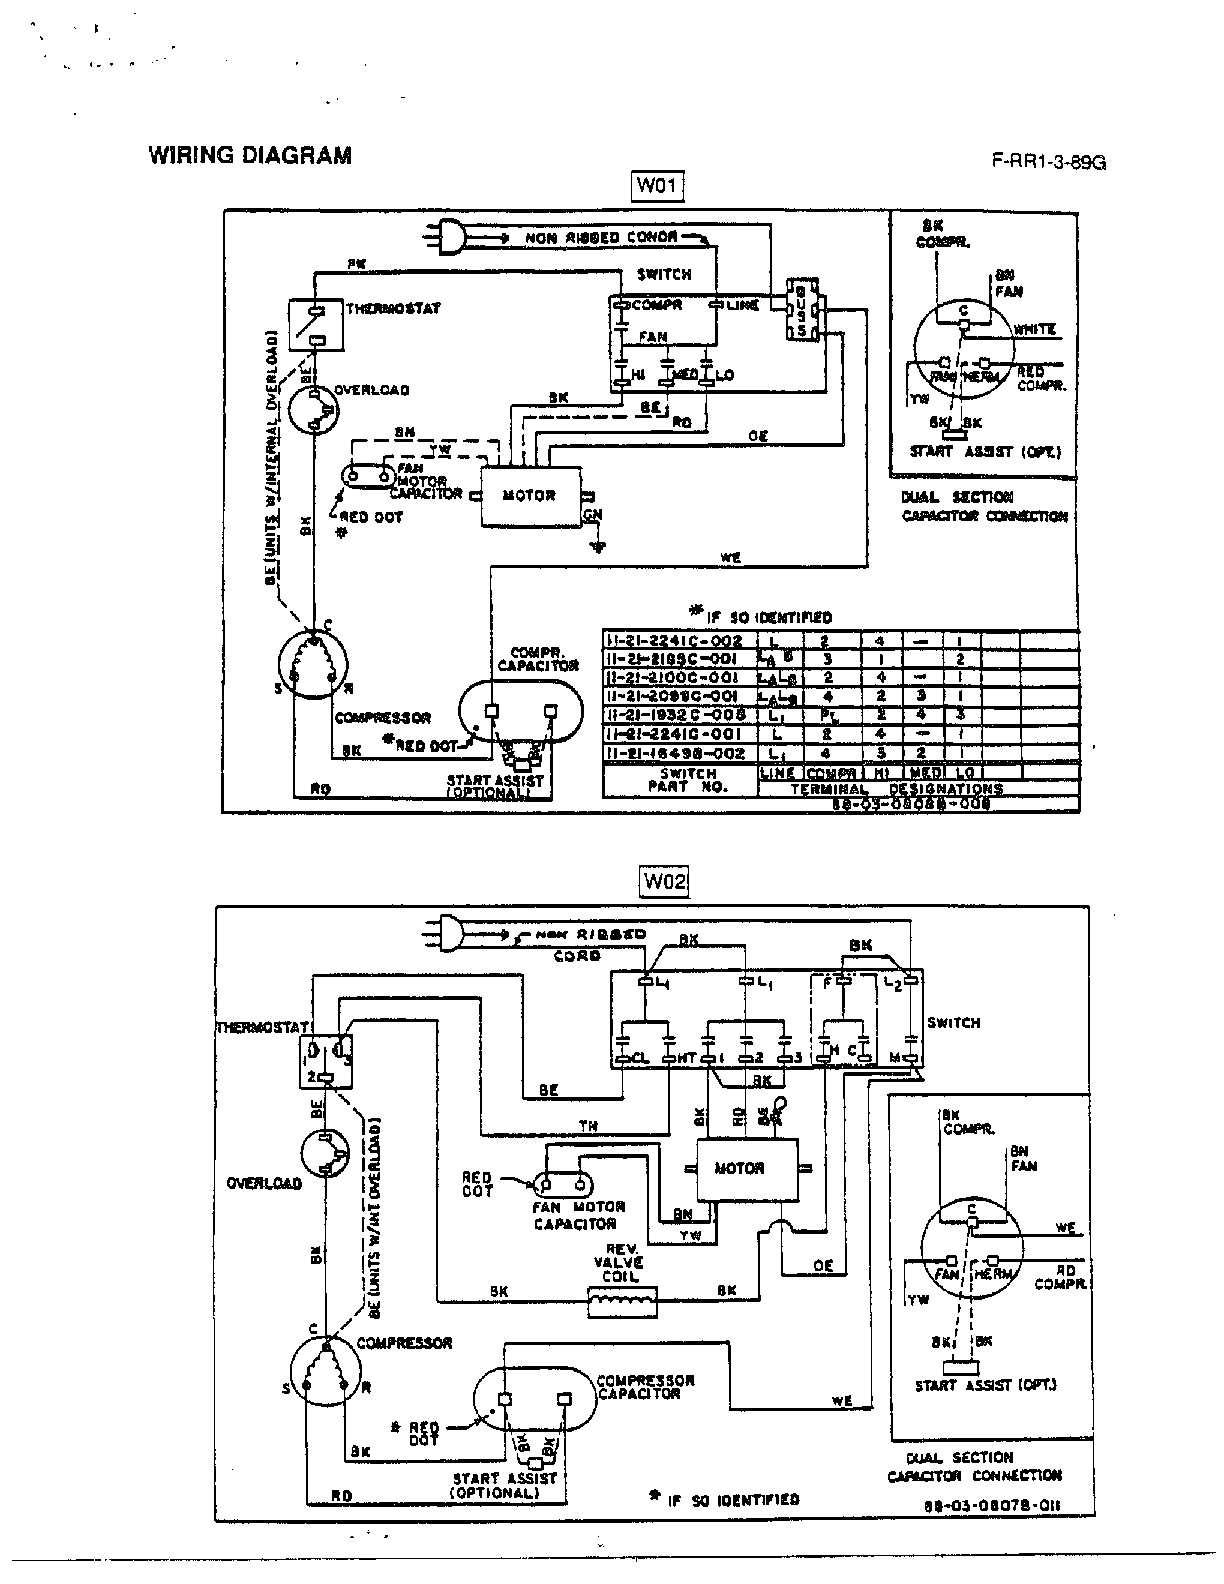 small resolution of funny wiring diagrams electrical wiring diagram fun wiring diagram wiring diagram new